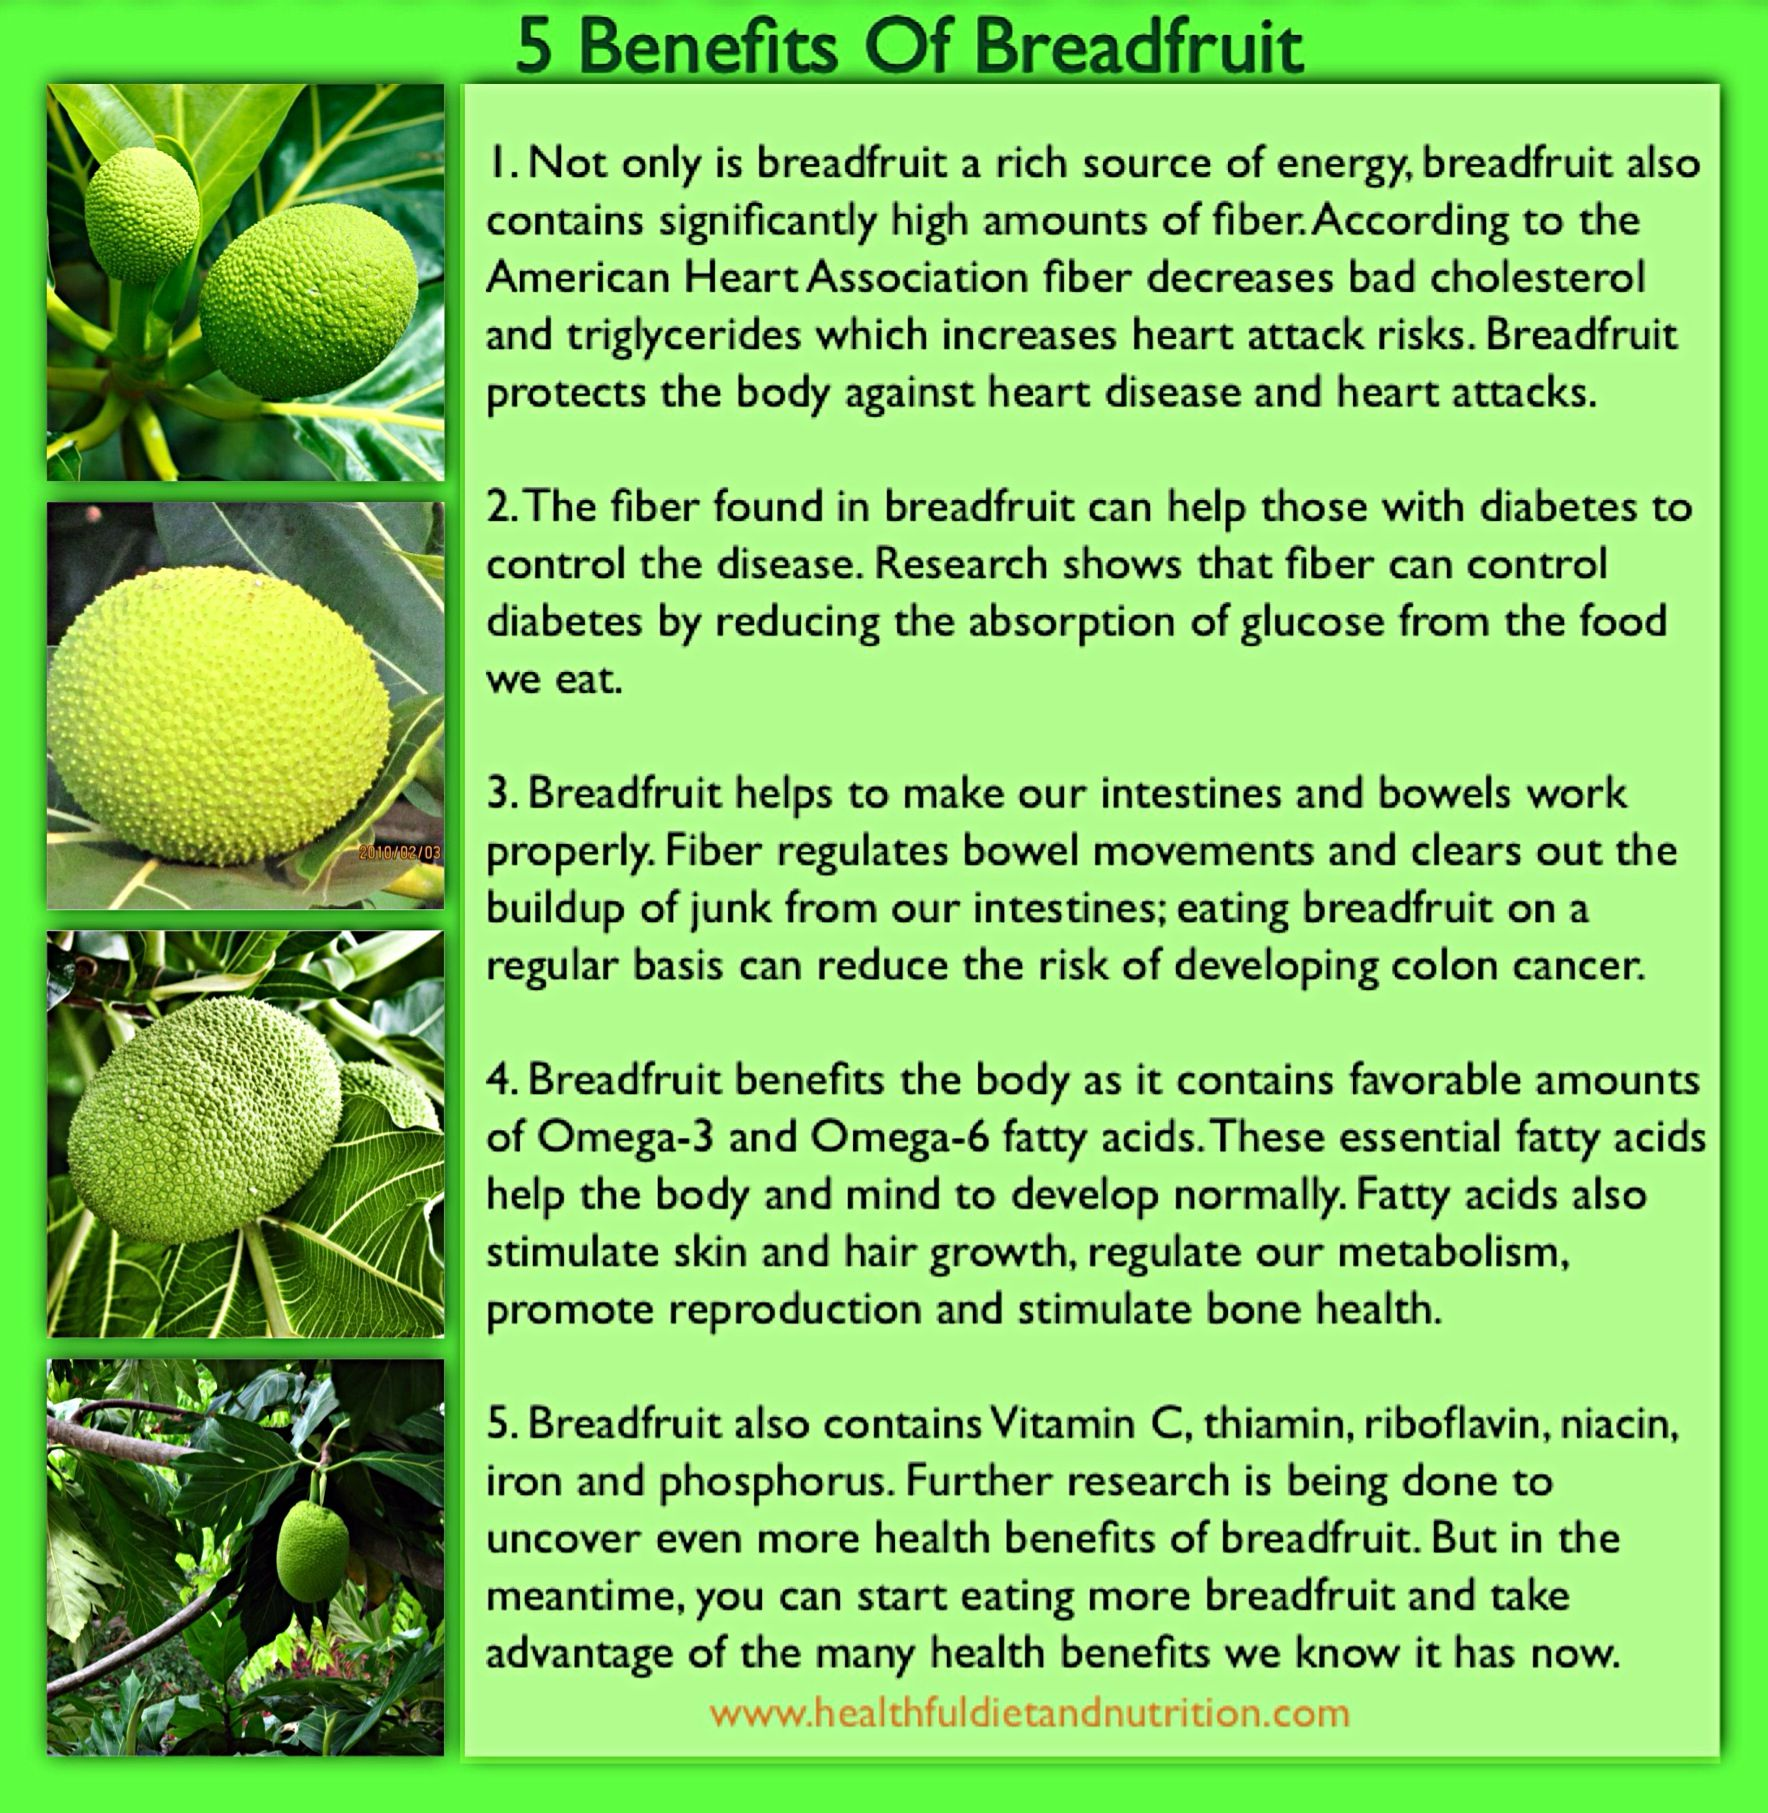 health benefits of breadfruit | healthful diet and nutrition